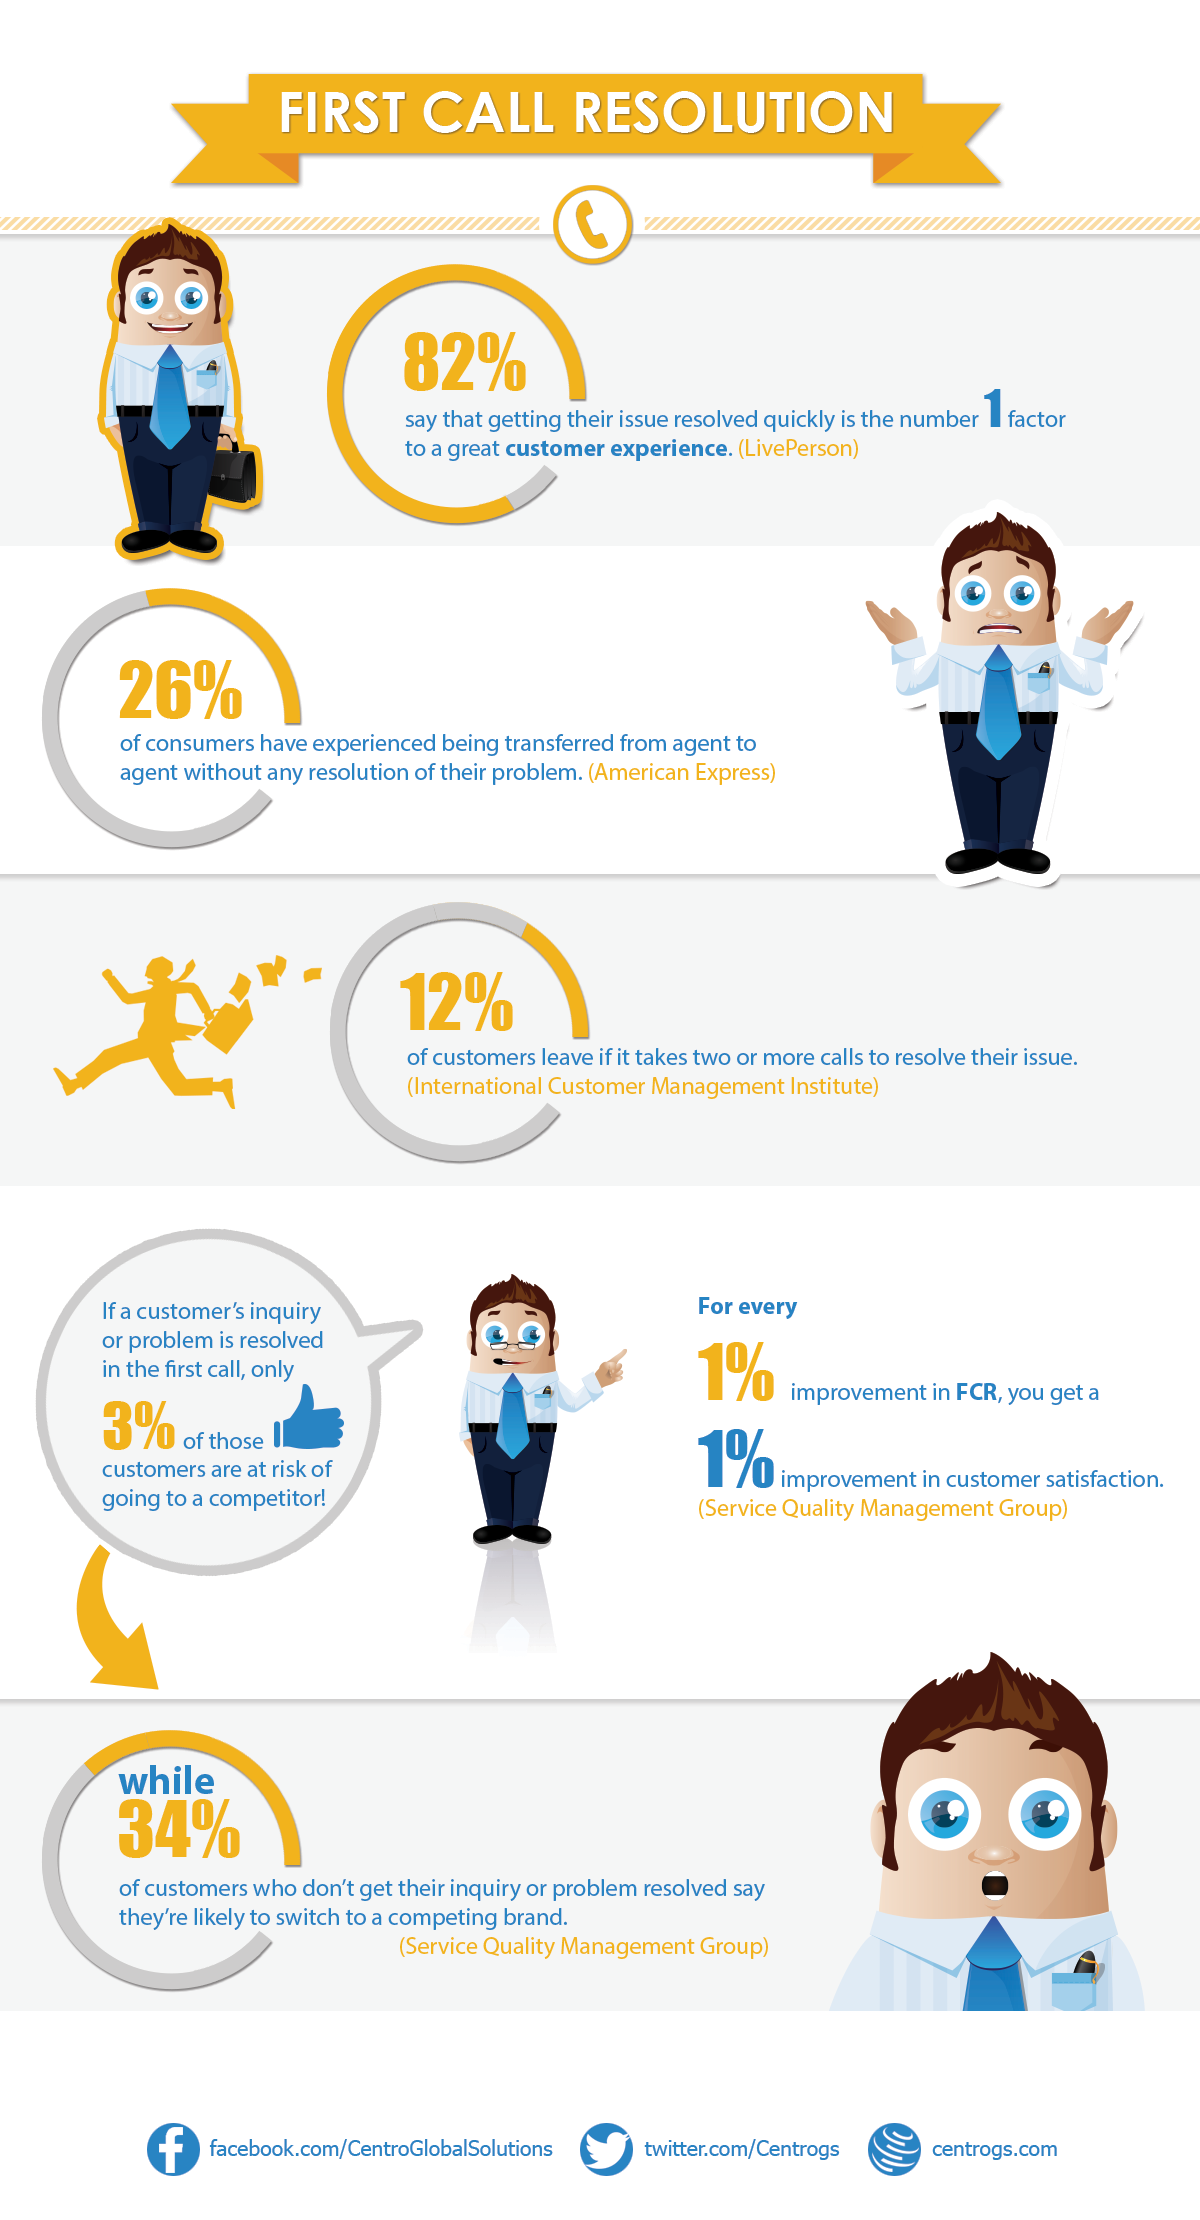 First call resolution infographic CX SCRM custserv